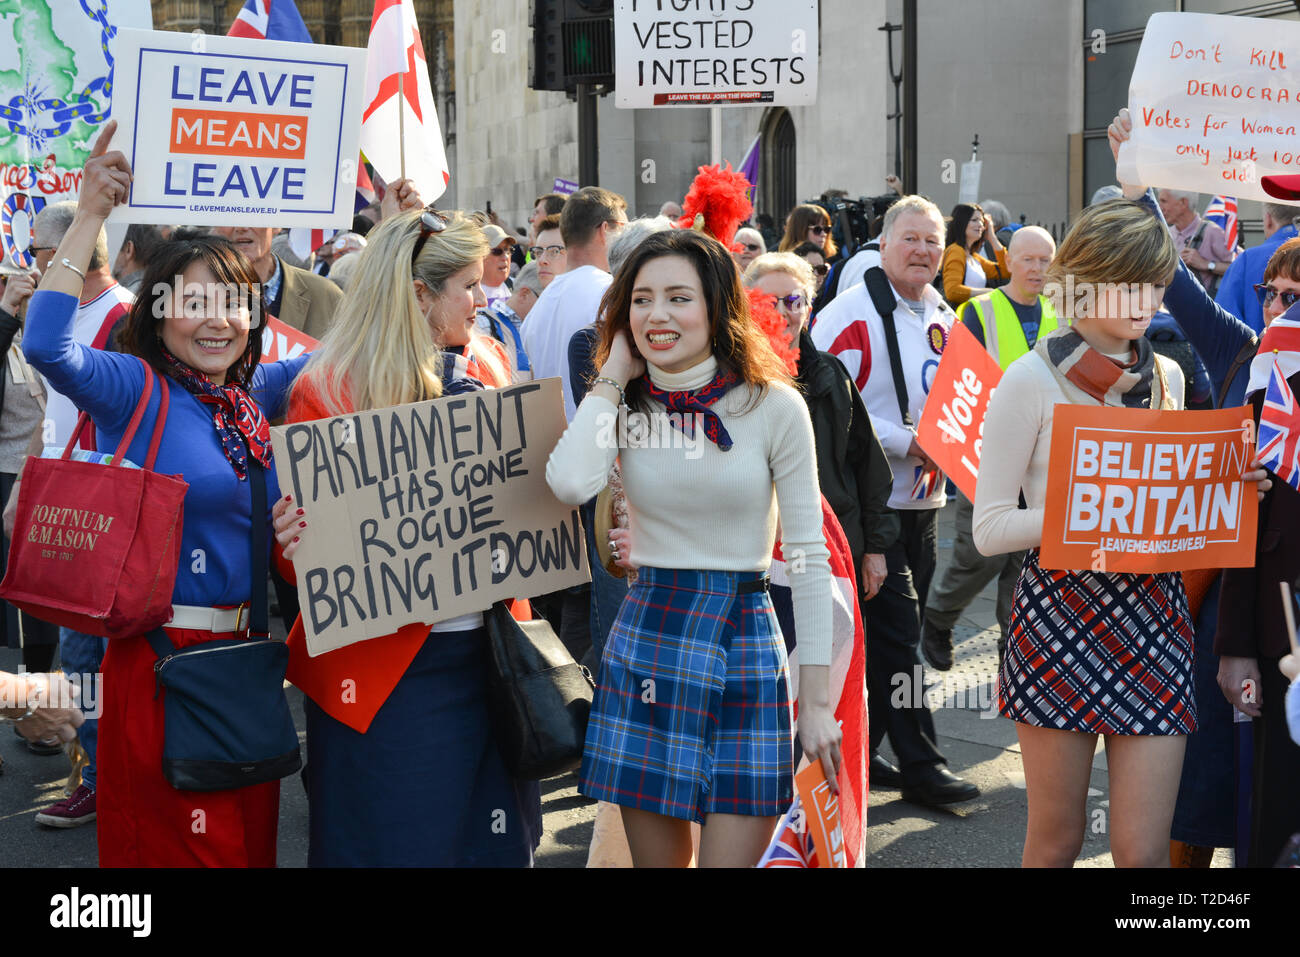 London, UK. 29th March, 2019. Pro-Brexit Activists demonstrate opposite Houses Of Parliament, on the day the UK was supposed to be leaving the EU. - Stock Image